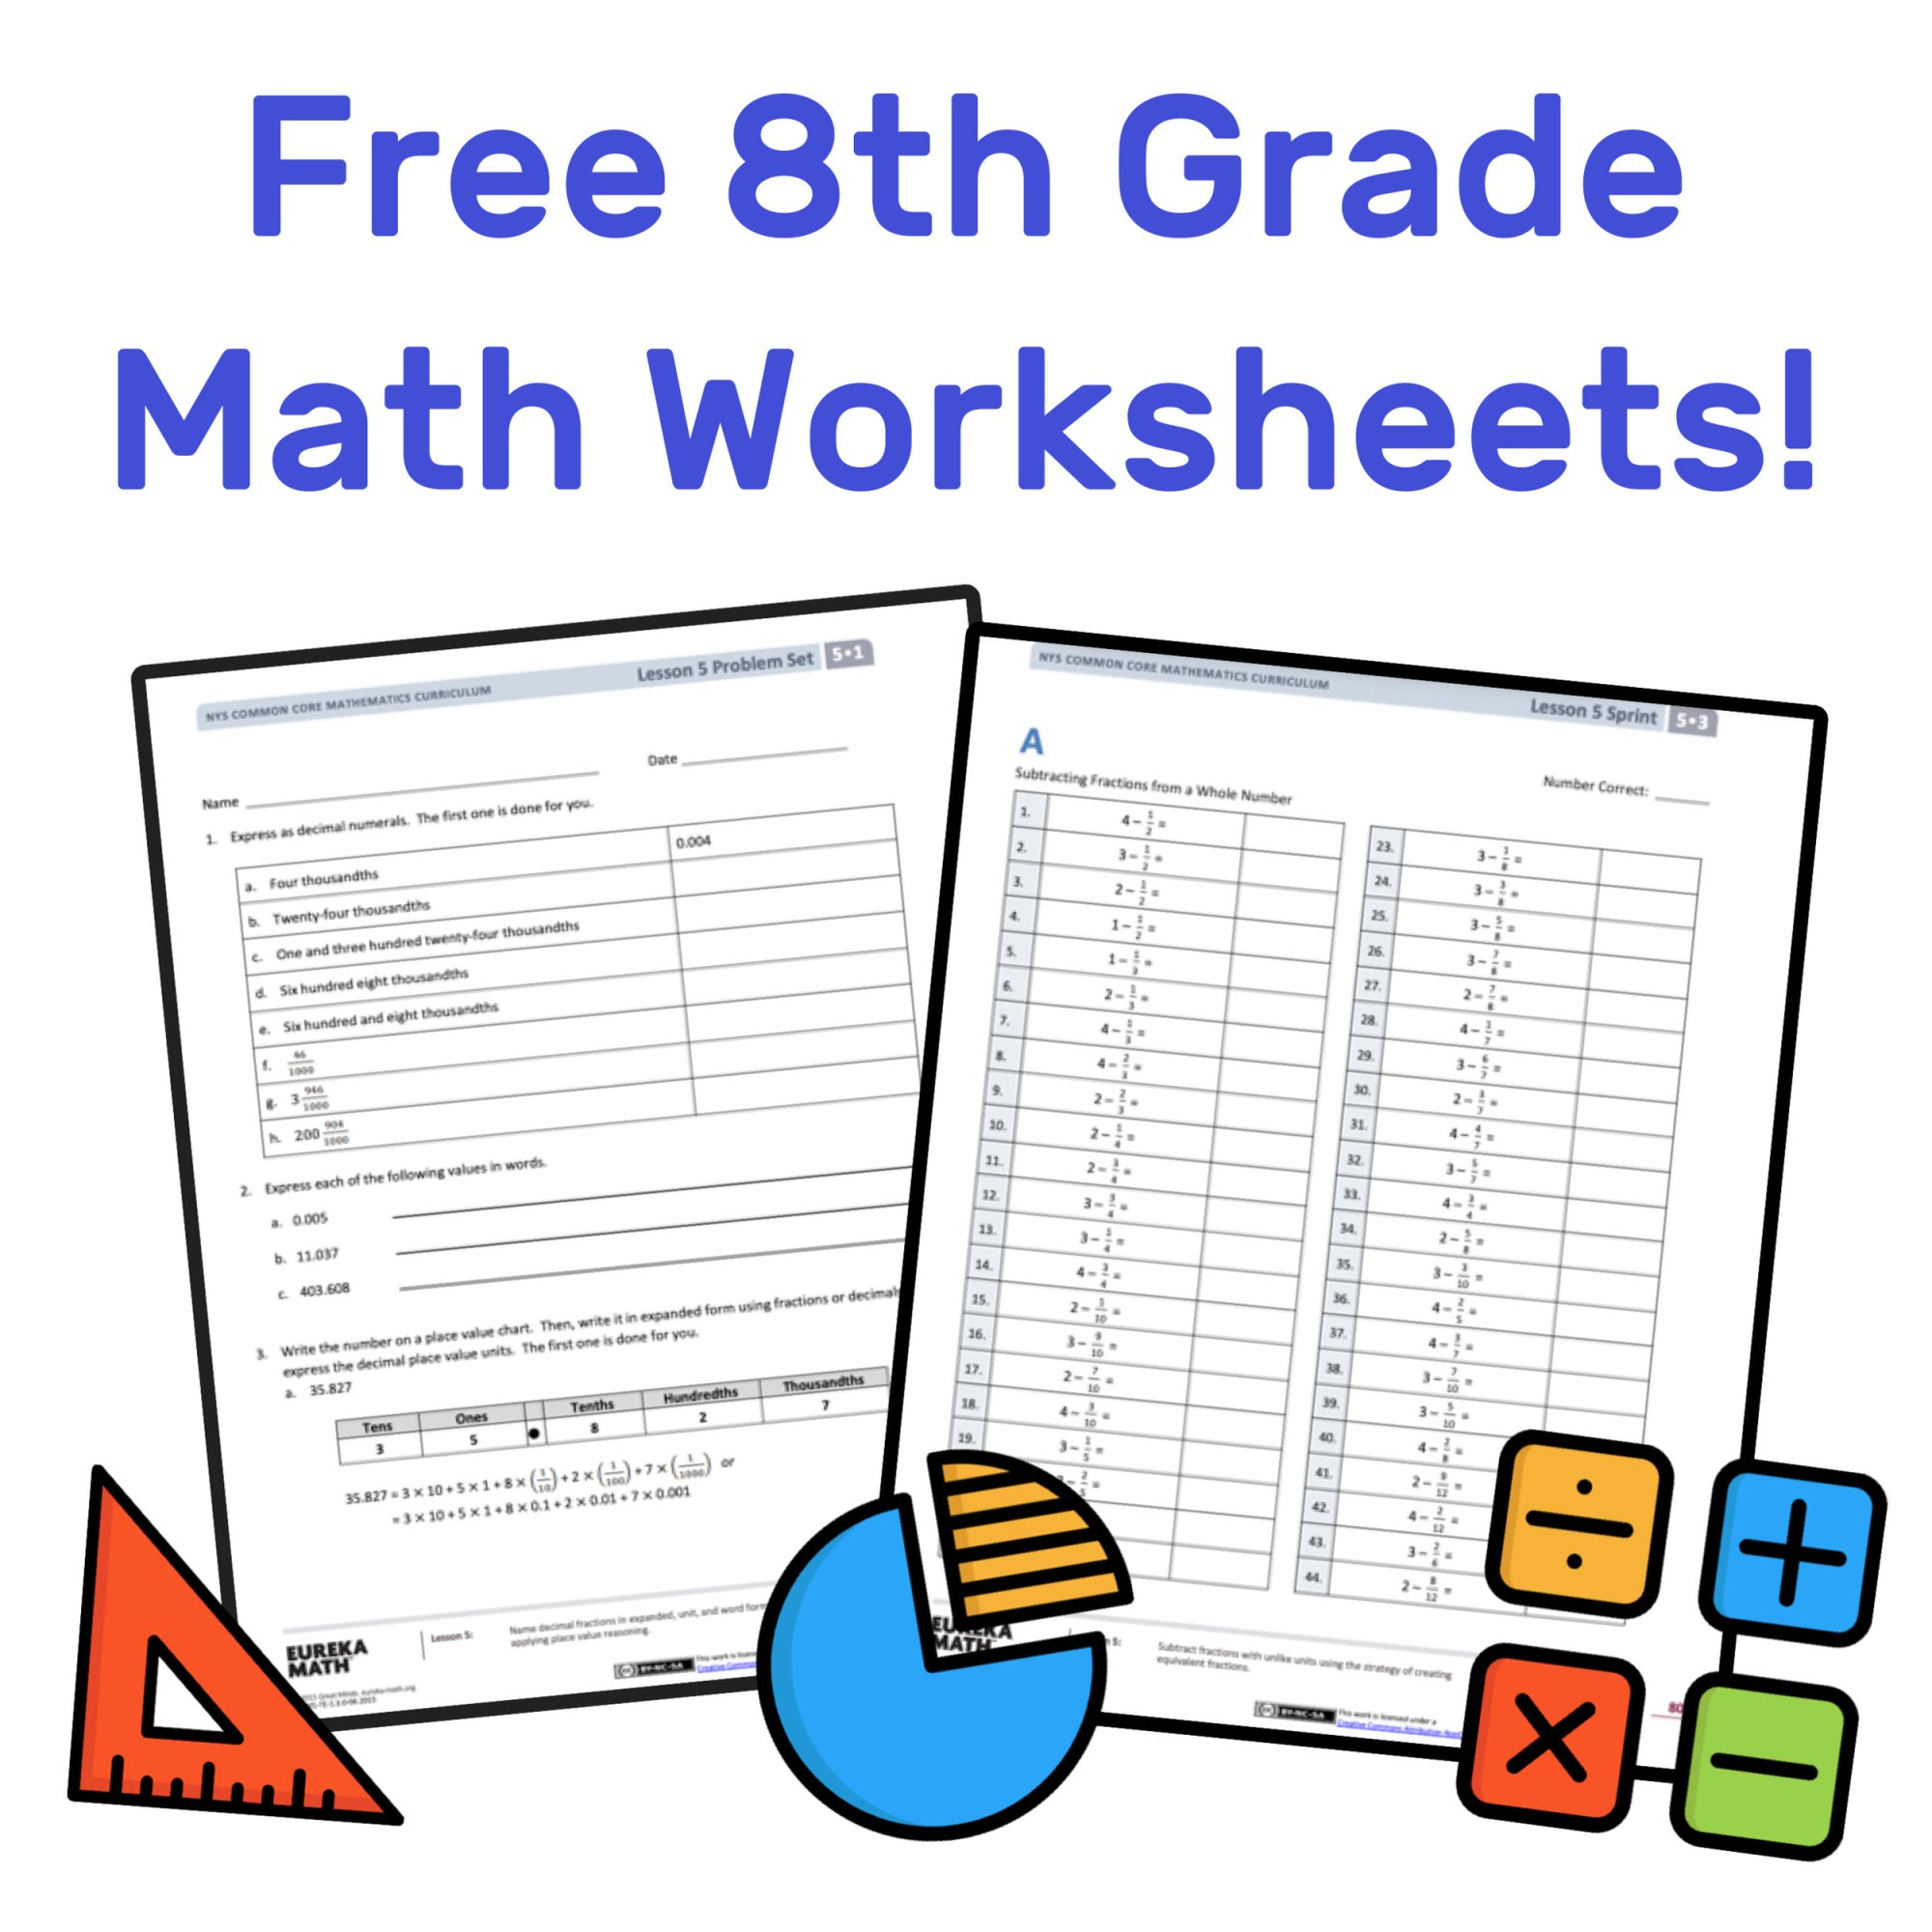 hight resolution of The Best Free 8th Grade Math Resources: Complete List! — Mashup Math